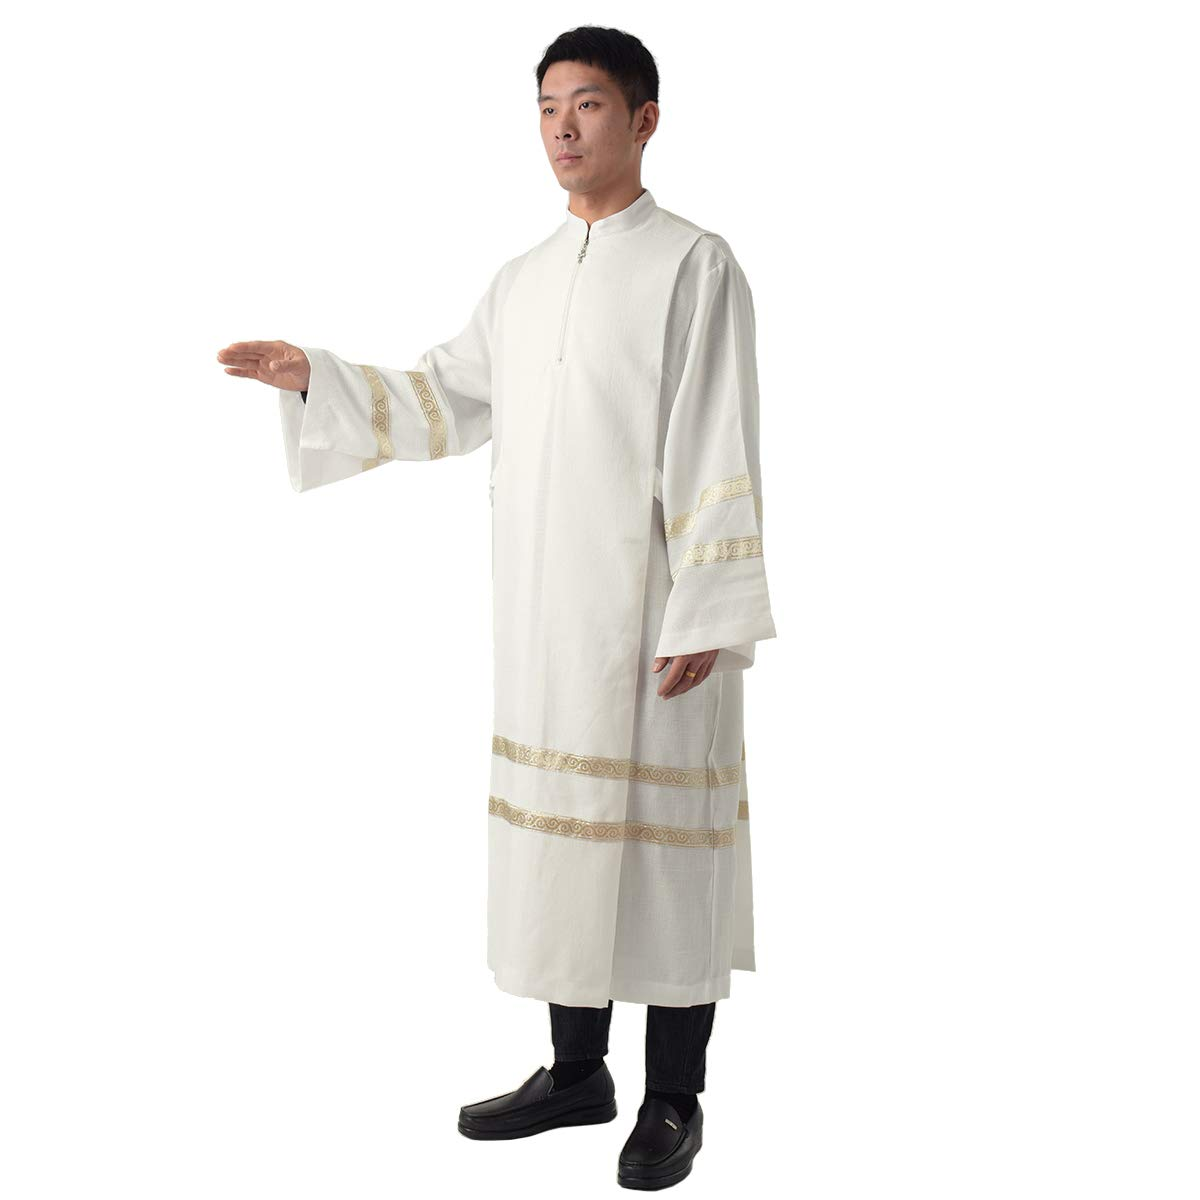 BLESSUME Unisex Concelebration Clergy ALB Church Worship ALB Vestments Robe